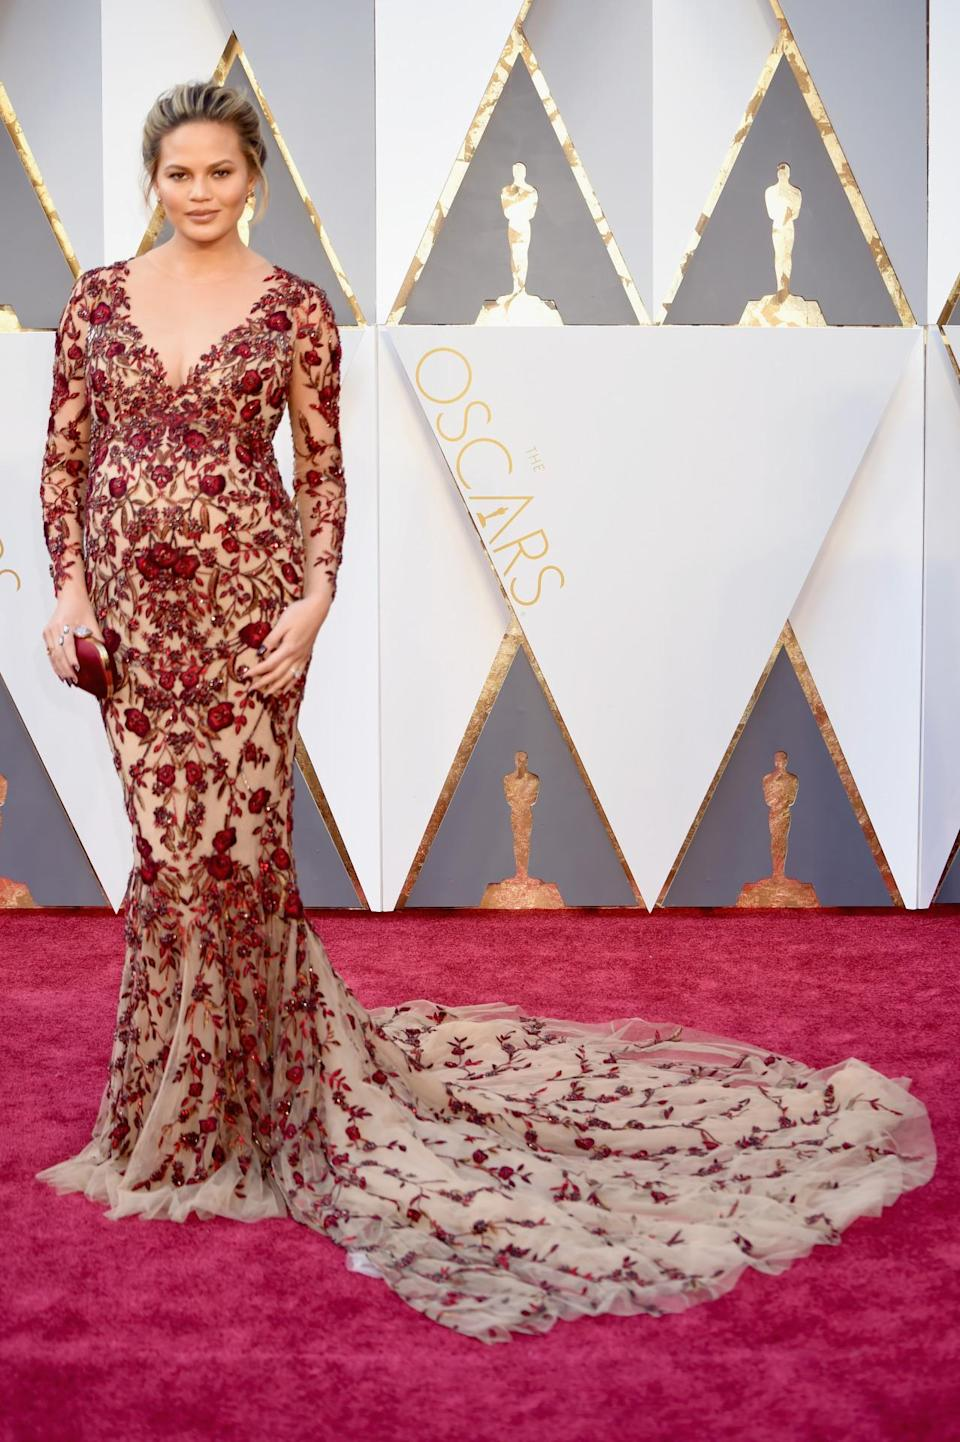 <p>Pregnant Chrissy Teigen wore a Marchesa naked dress to the Oscars, where her husband, John Legend, presented an award with collaborator Common. <i><i>(Photo: Getty Images)</i></i></p>